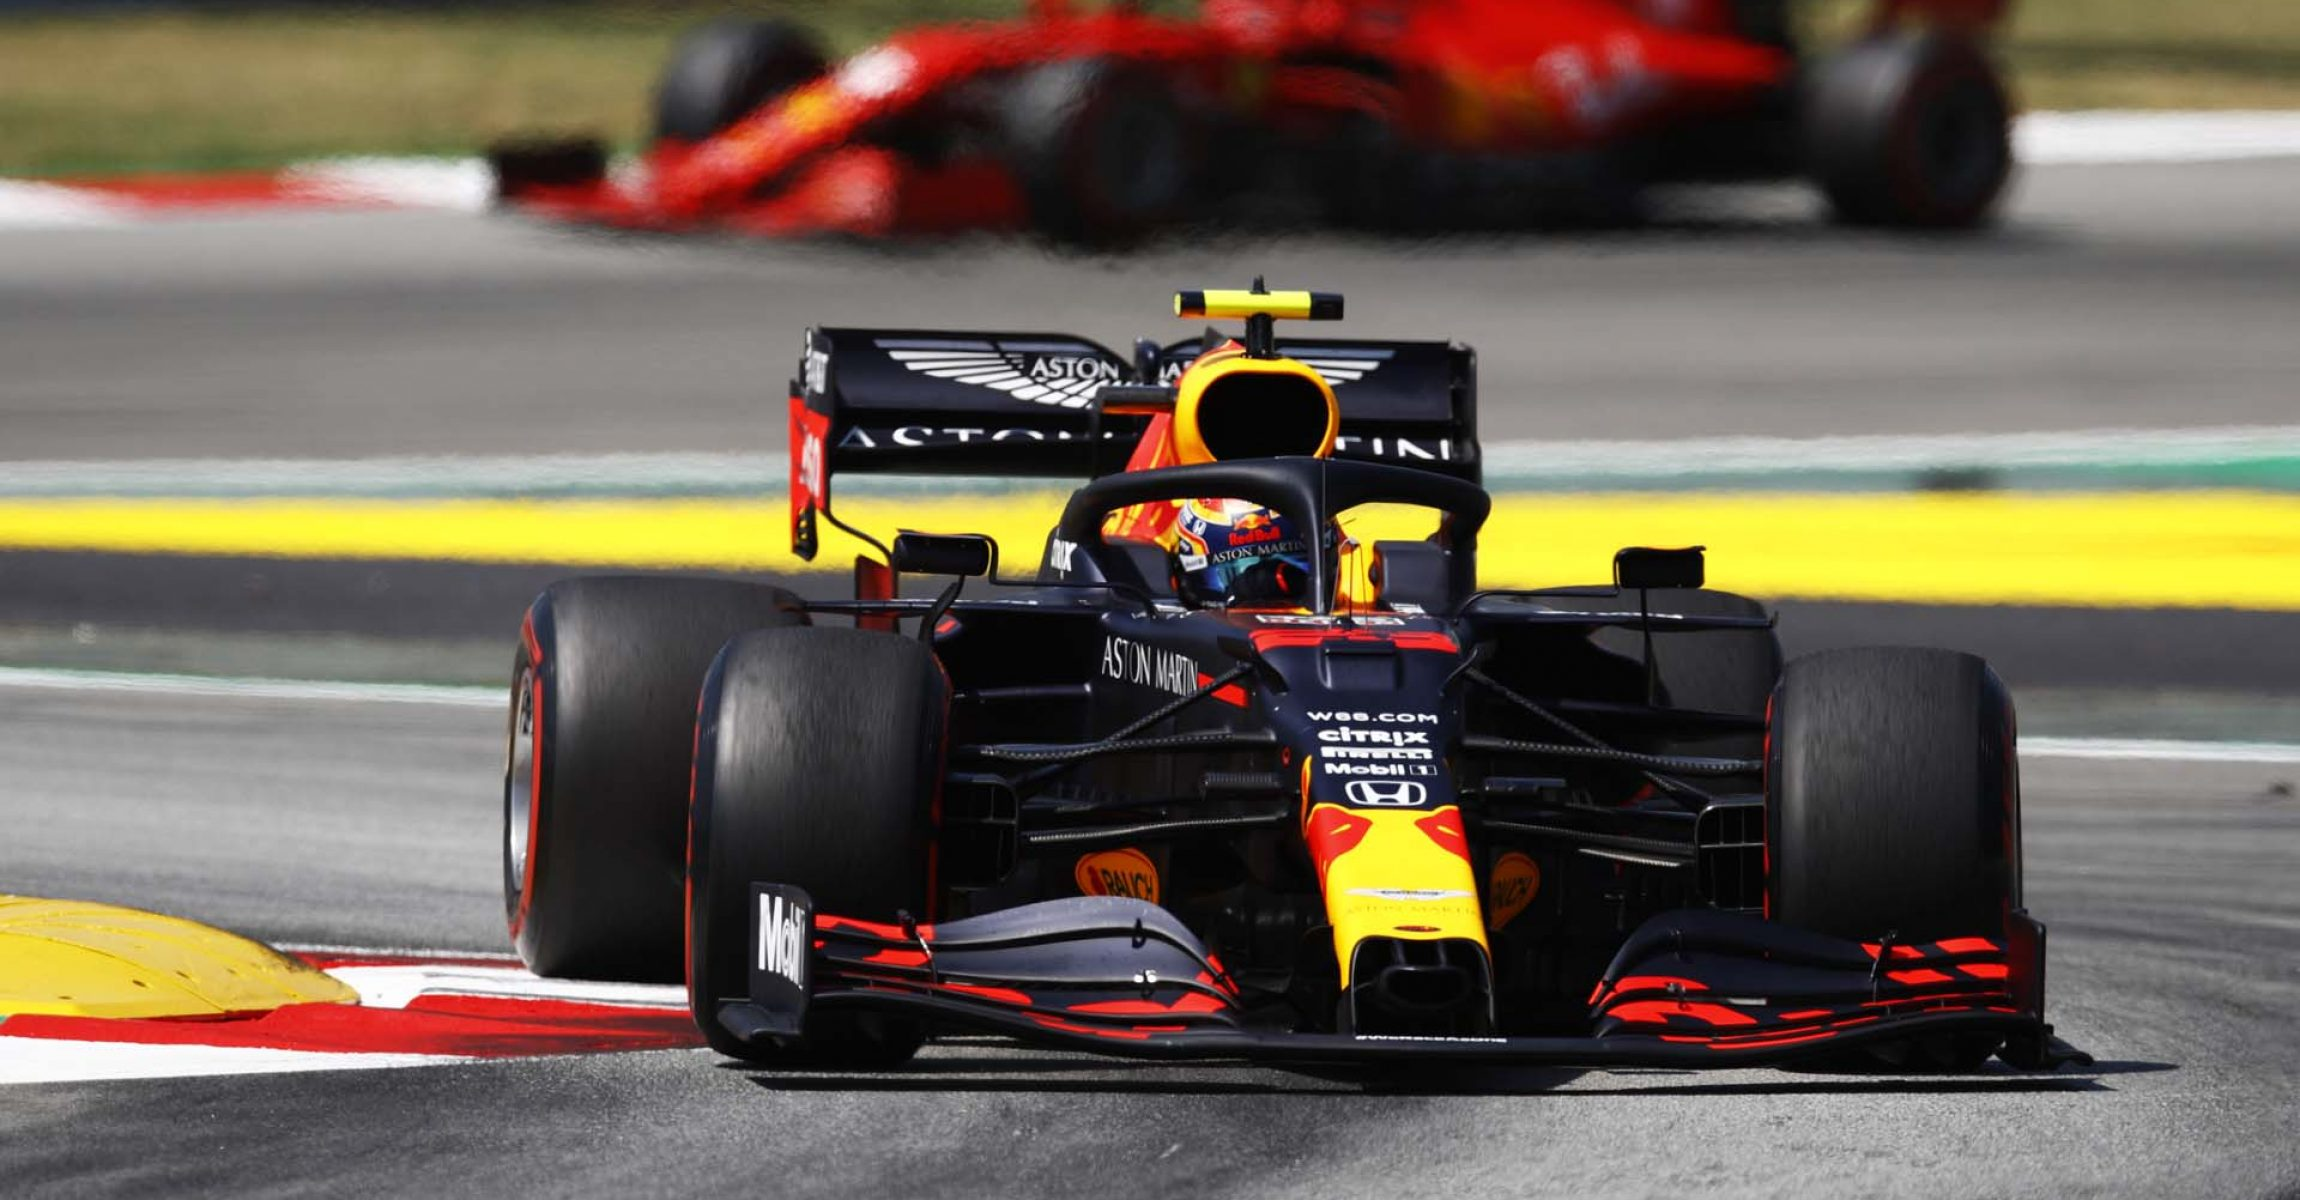 BARCELONA, SPAIN - AUGUST 15: Alexander Albon of Thailand driving the (23) Aston Martin Red Bull Racing RB16 on track during final practice for the F1 Grand Prix of Spain at Circuit de Barcelona-Catalunya on August 15, 2020 in Barcelona, Spain. (Photo by Alejandro Garcia/Pool via Getty Images)